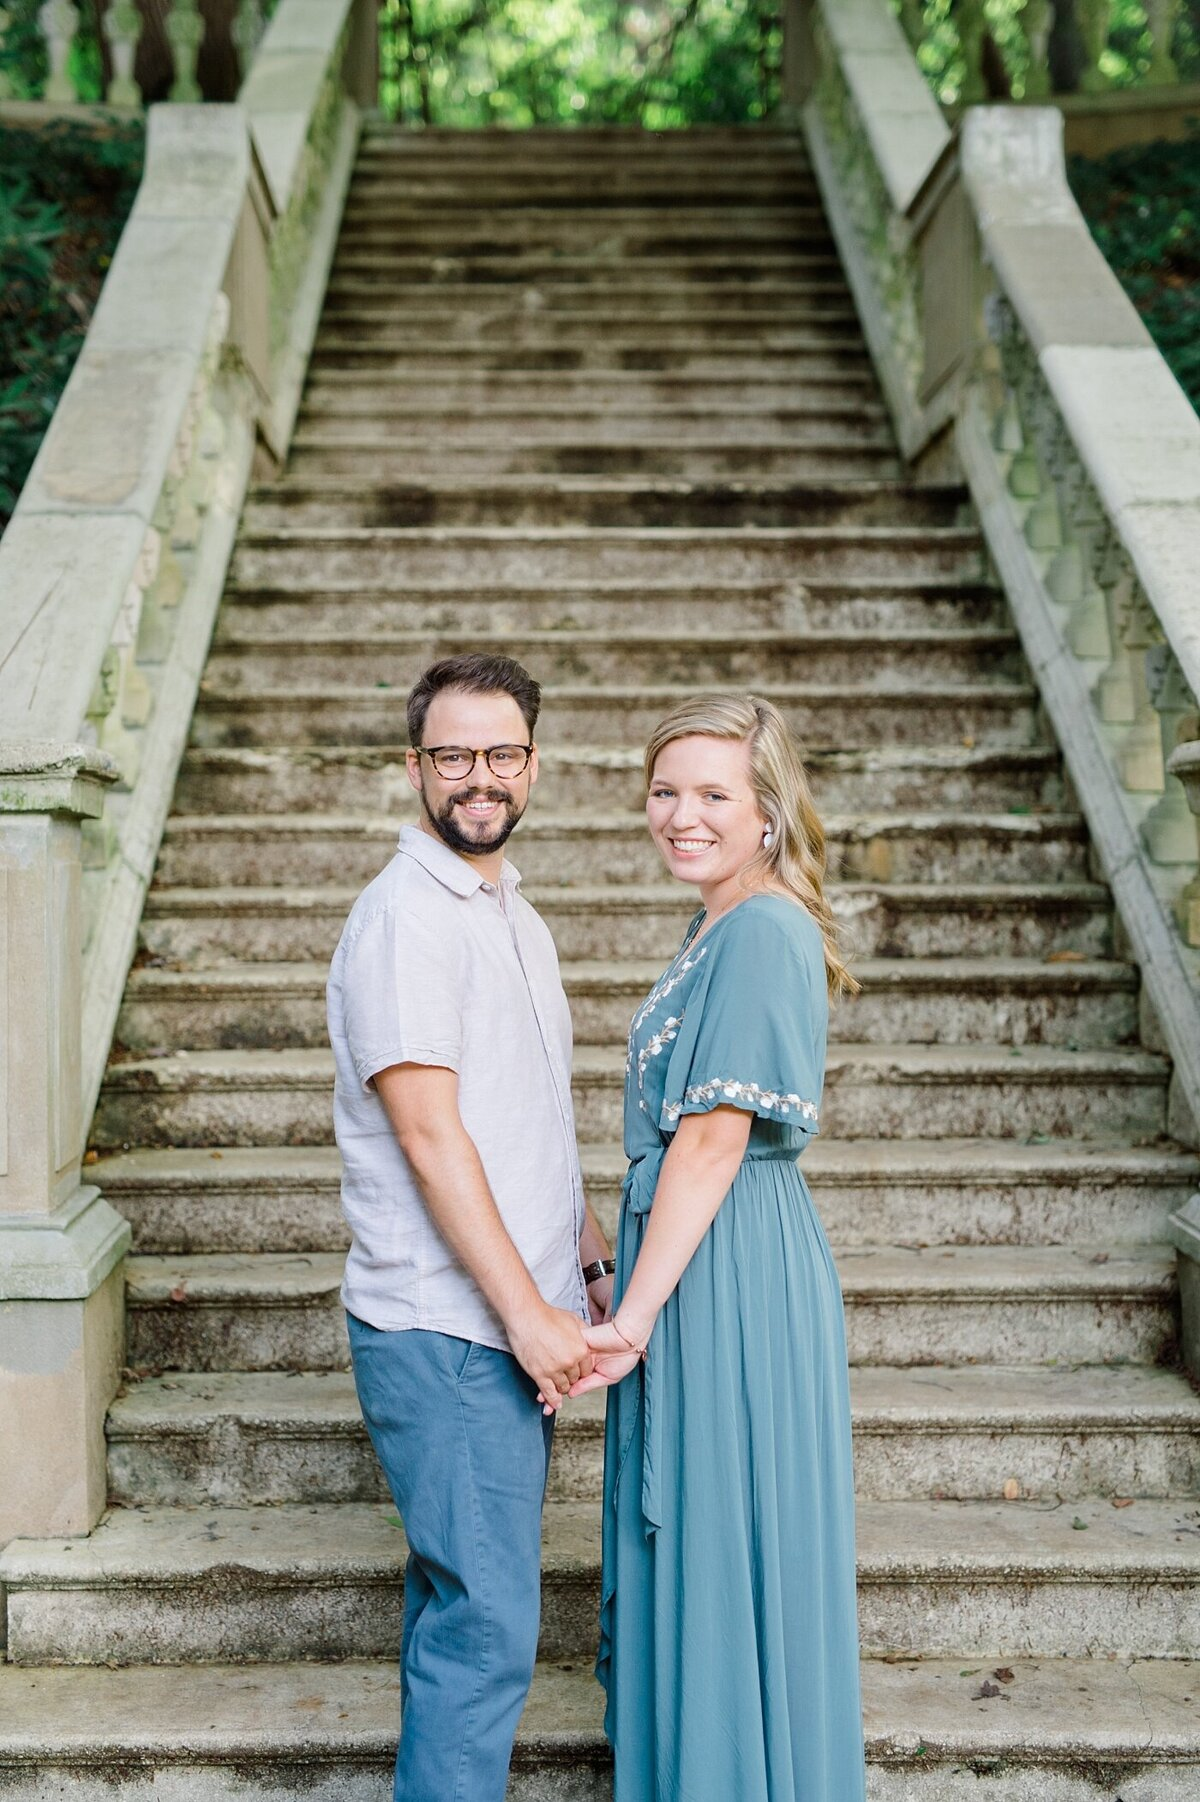 cator-woolford-gardens-engagement-wedding-photographer-laura-barnes-photo-shackelford-02